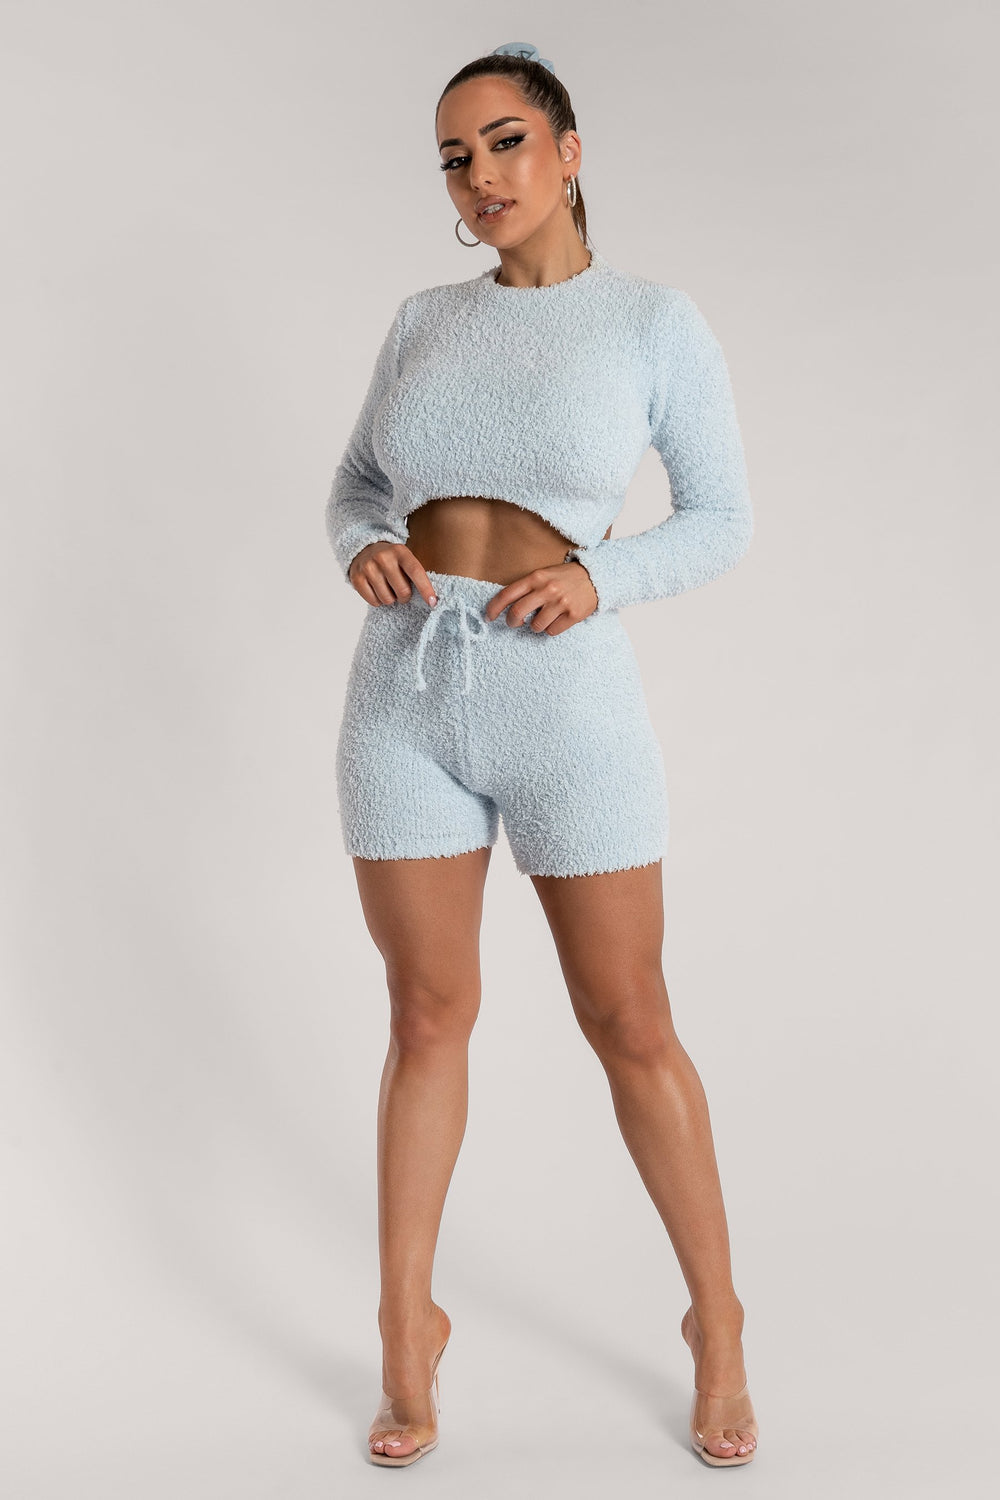 Charlotte Popcorn Long Sleeve Cut Out Back Crop Top - Baby Blue - MESHKI